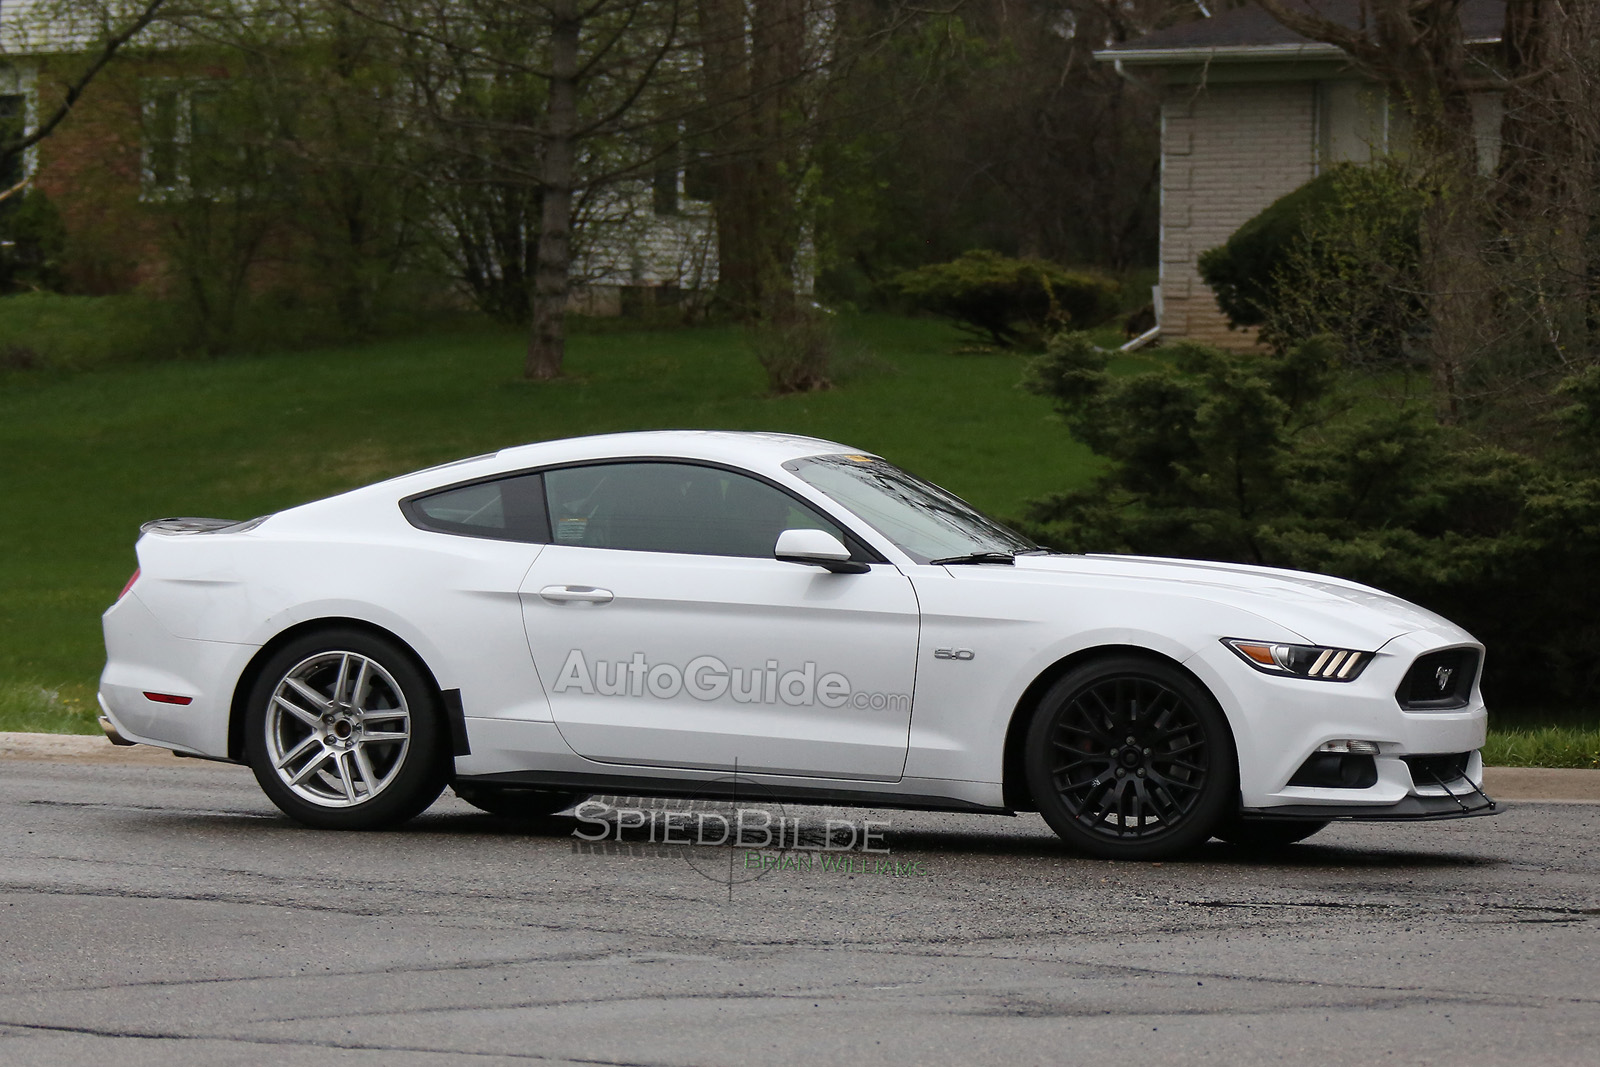 2018 Ford Mustang Mach 1 Spied Testing Autoguide Com News